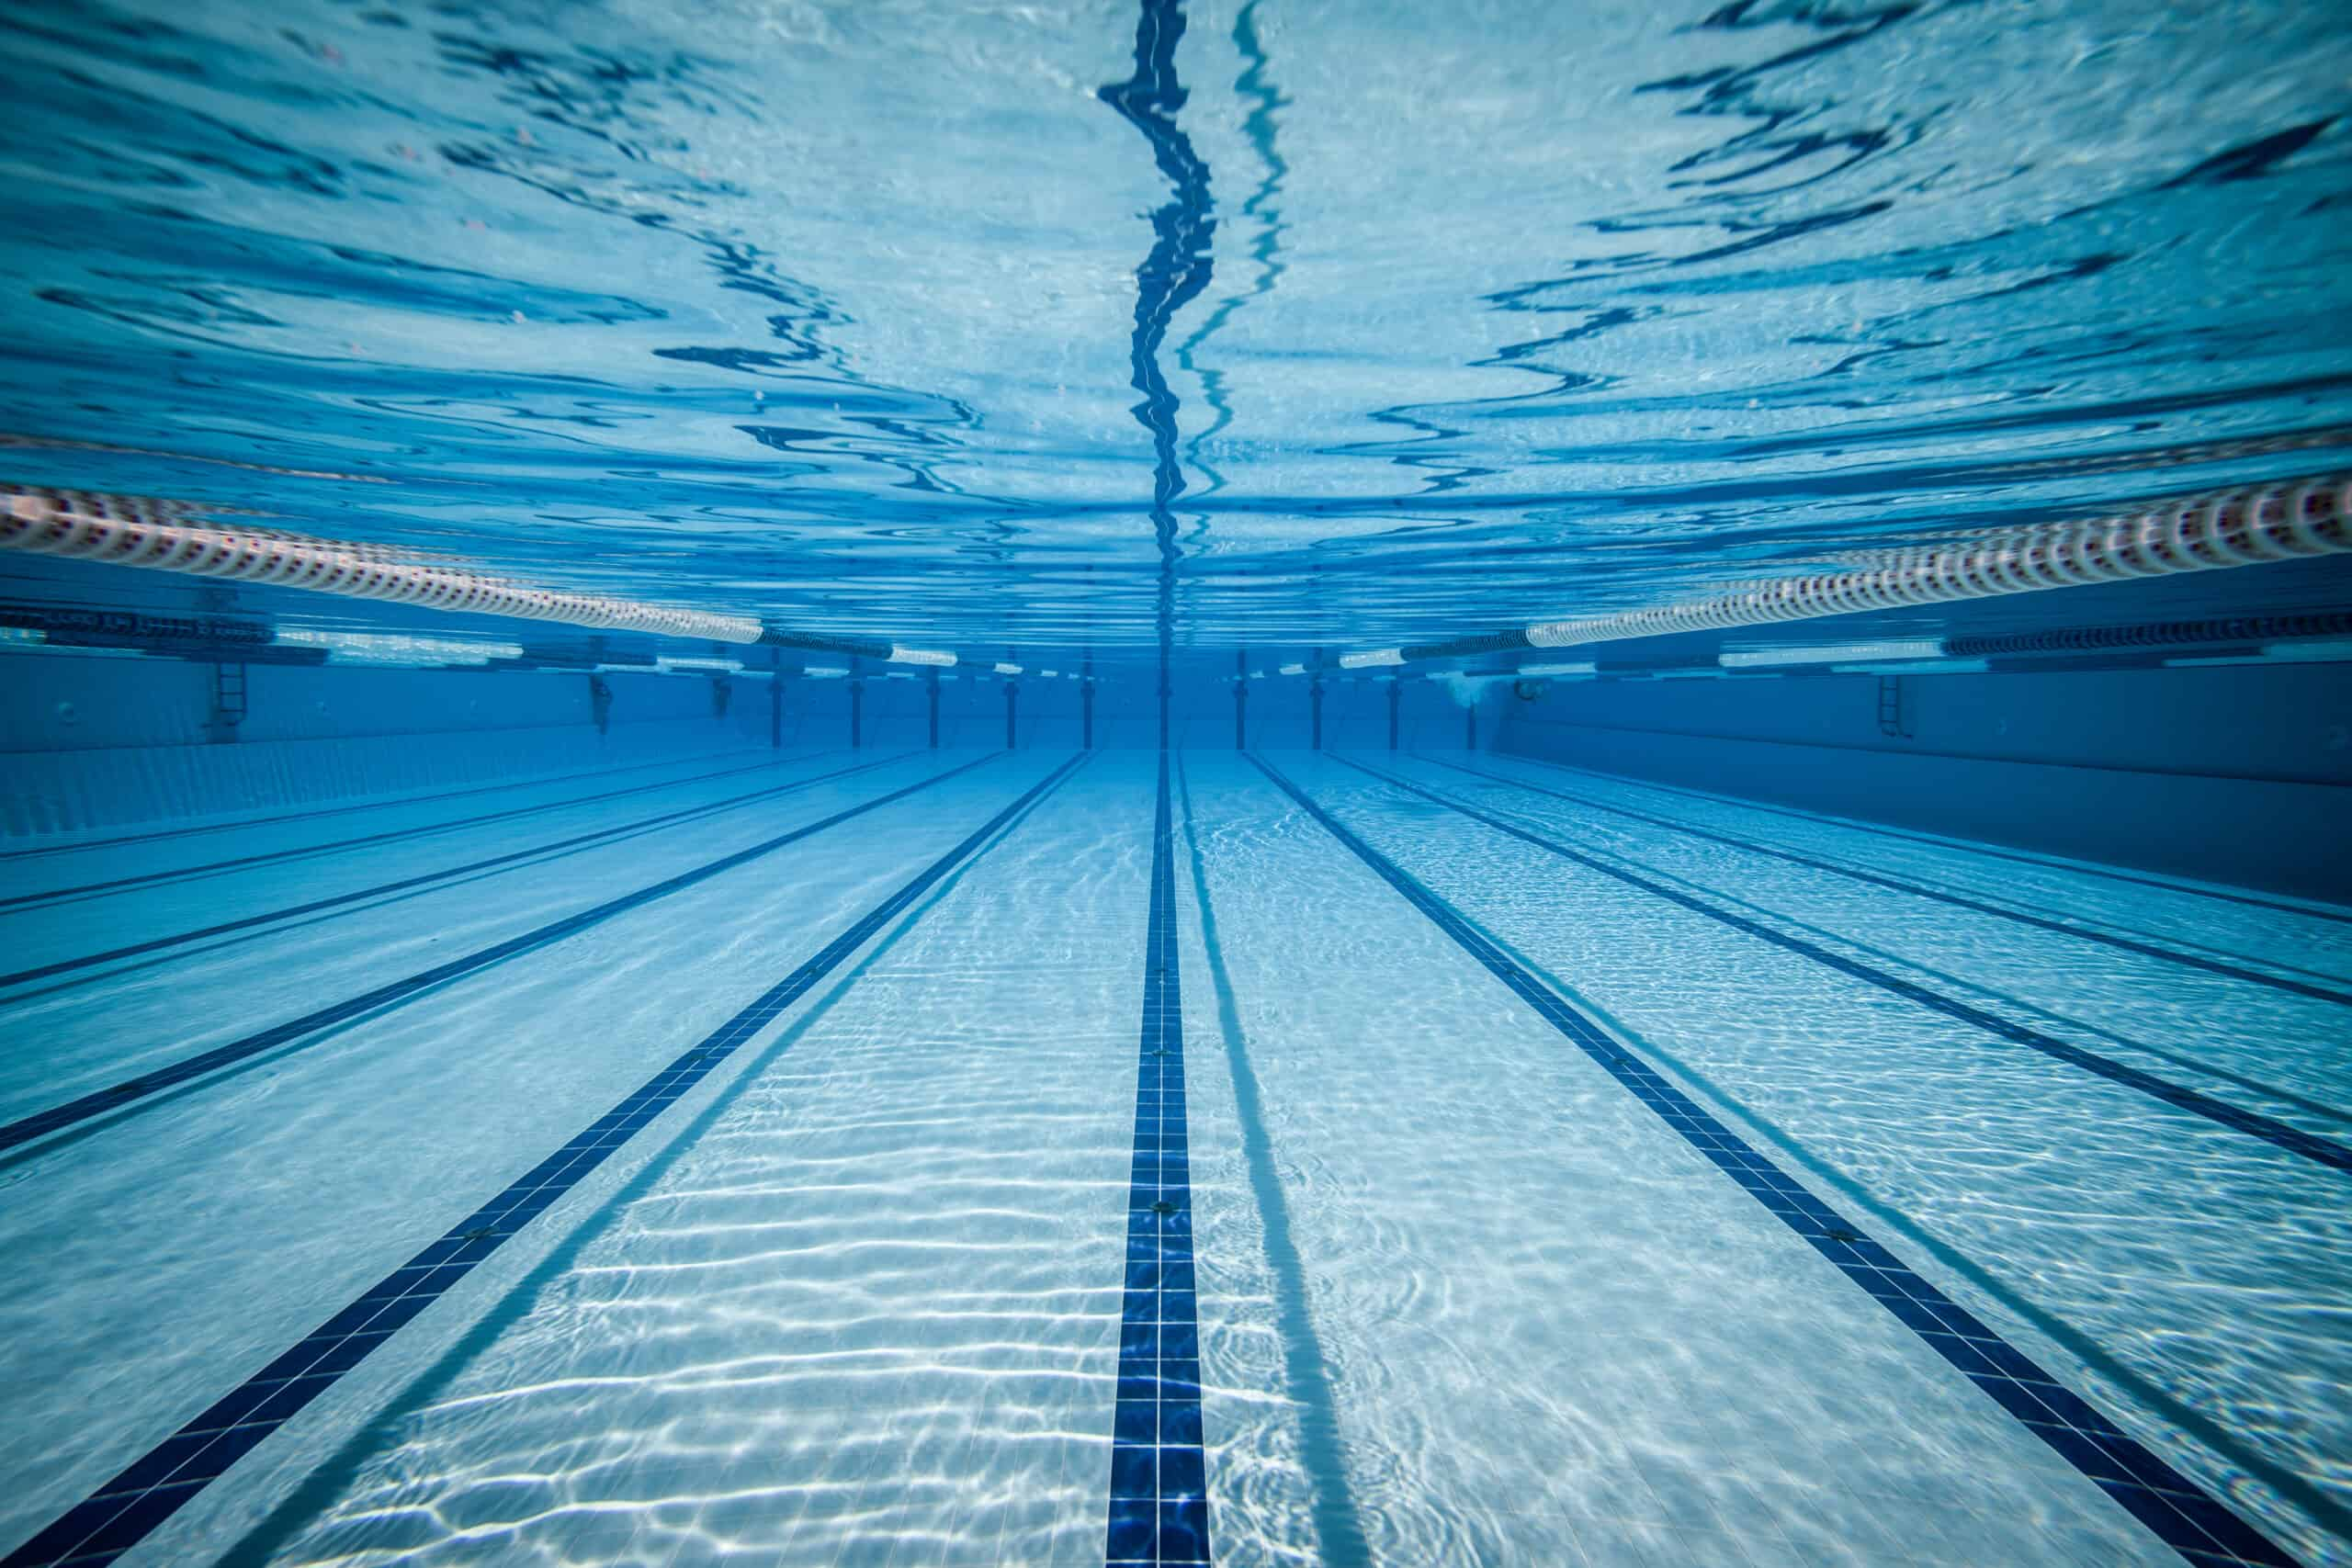 Underwater image of swimming pool with lap lanes